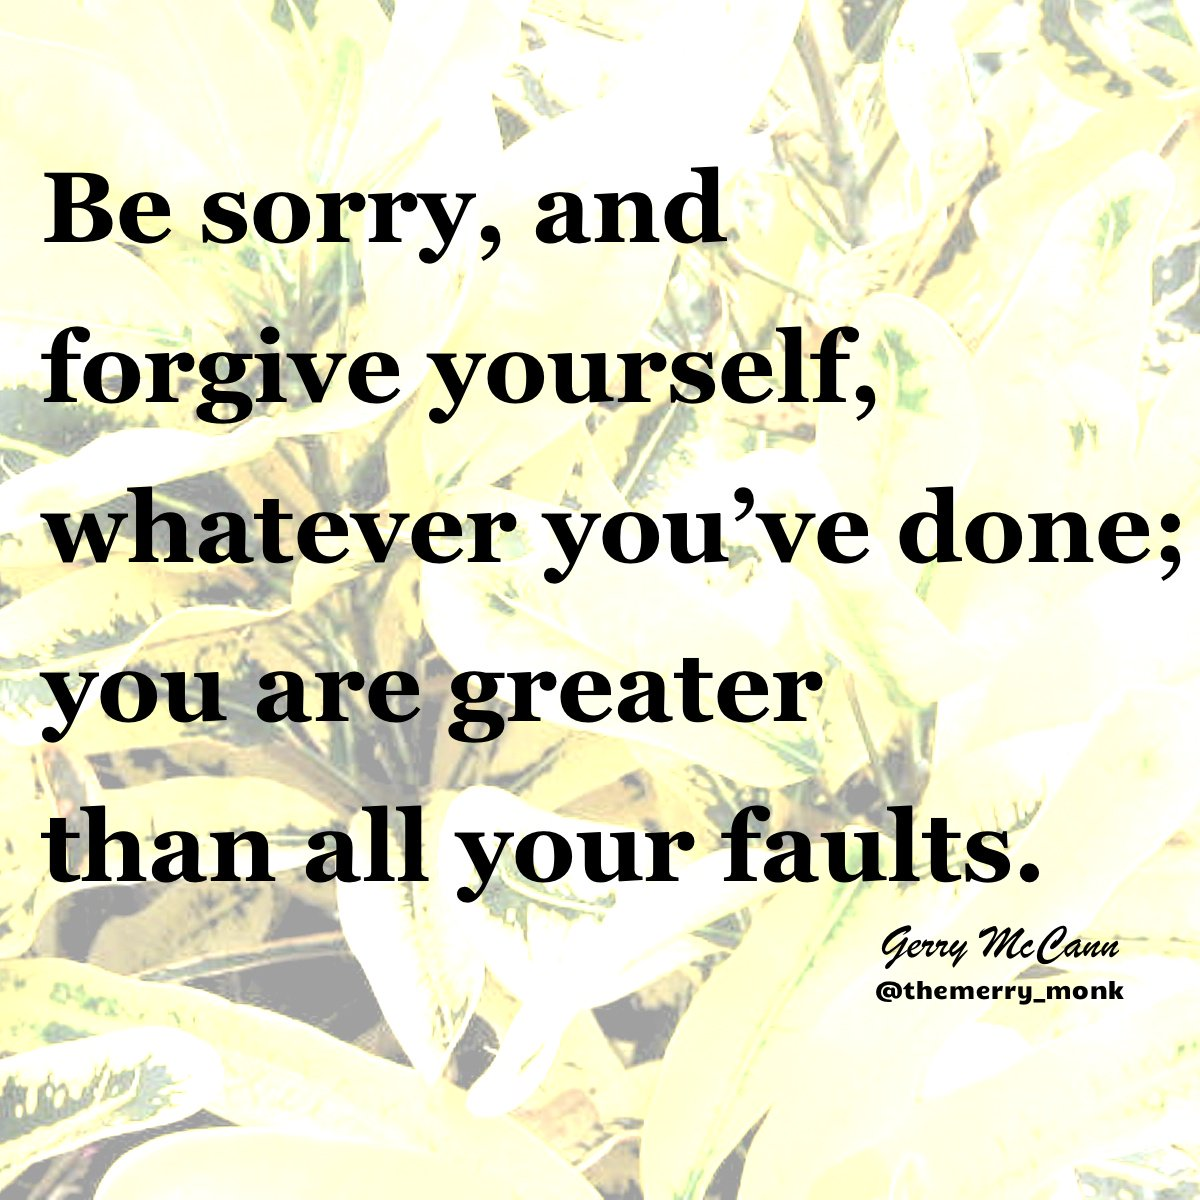 Be sorry, yes but then forgive yourself  #leadership #personalgrowth <br>http://pic.twitter.com/2DnyvZtigx